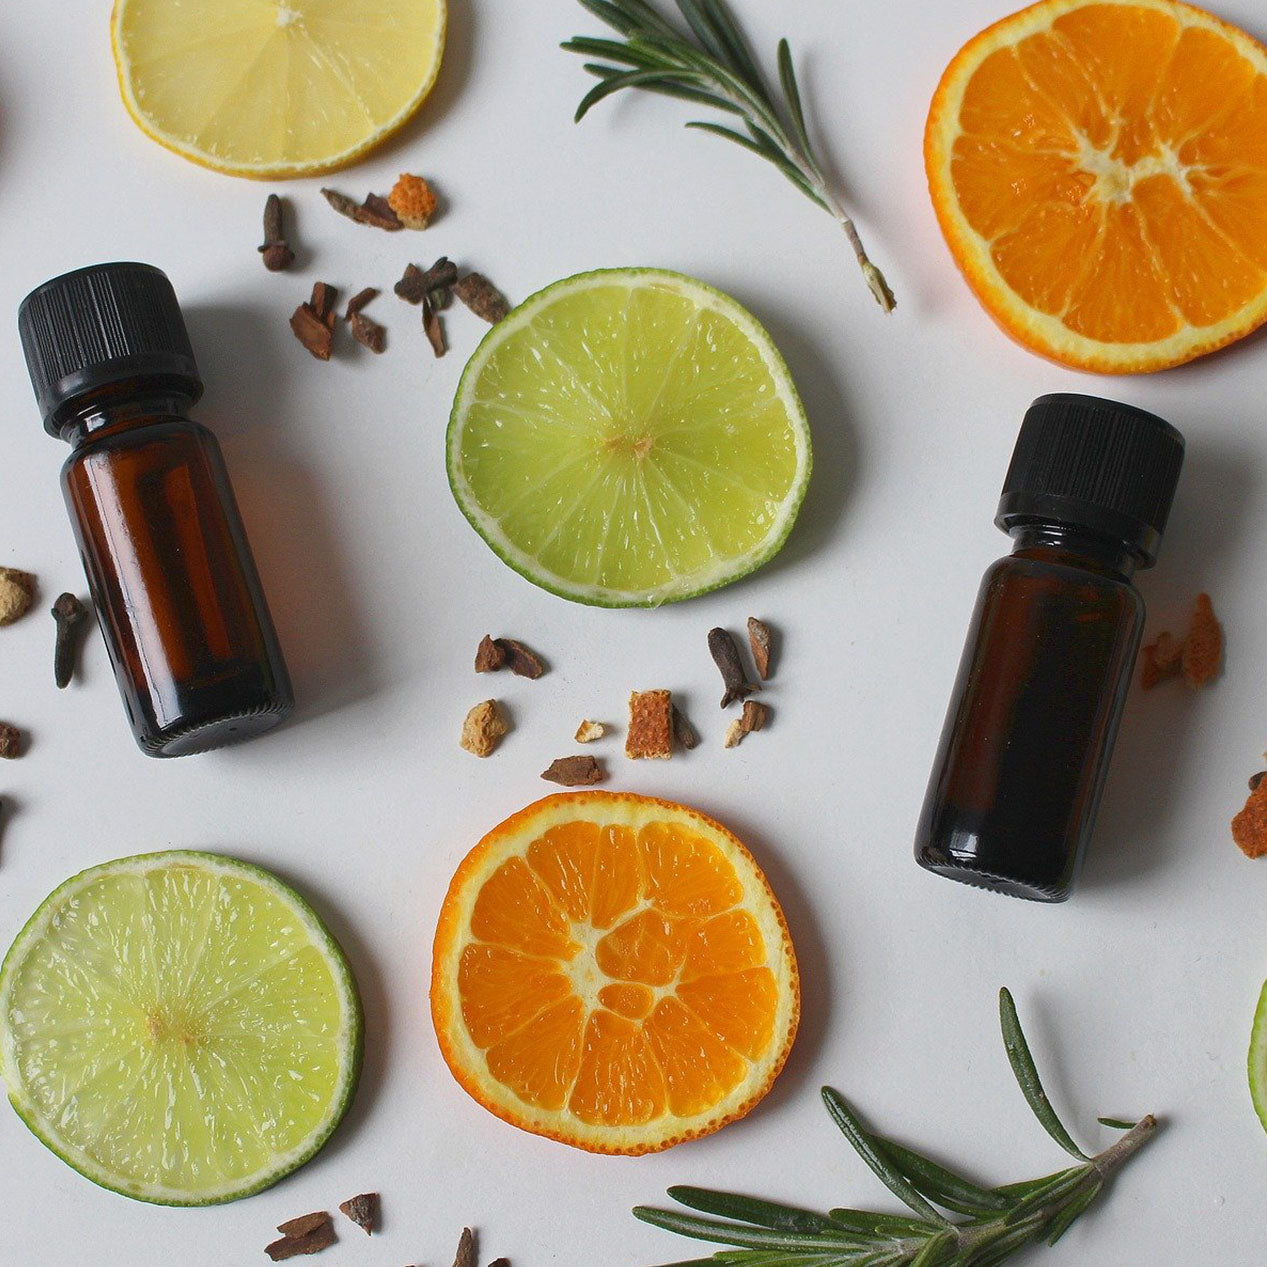 Green Cleaning Methods with Essential Oils